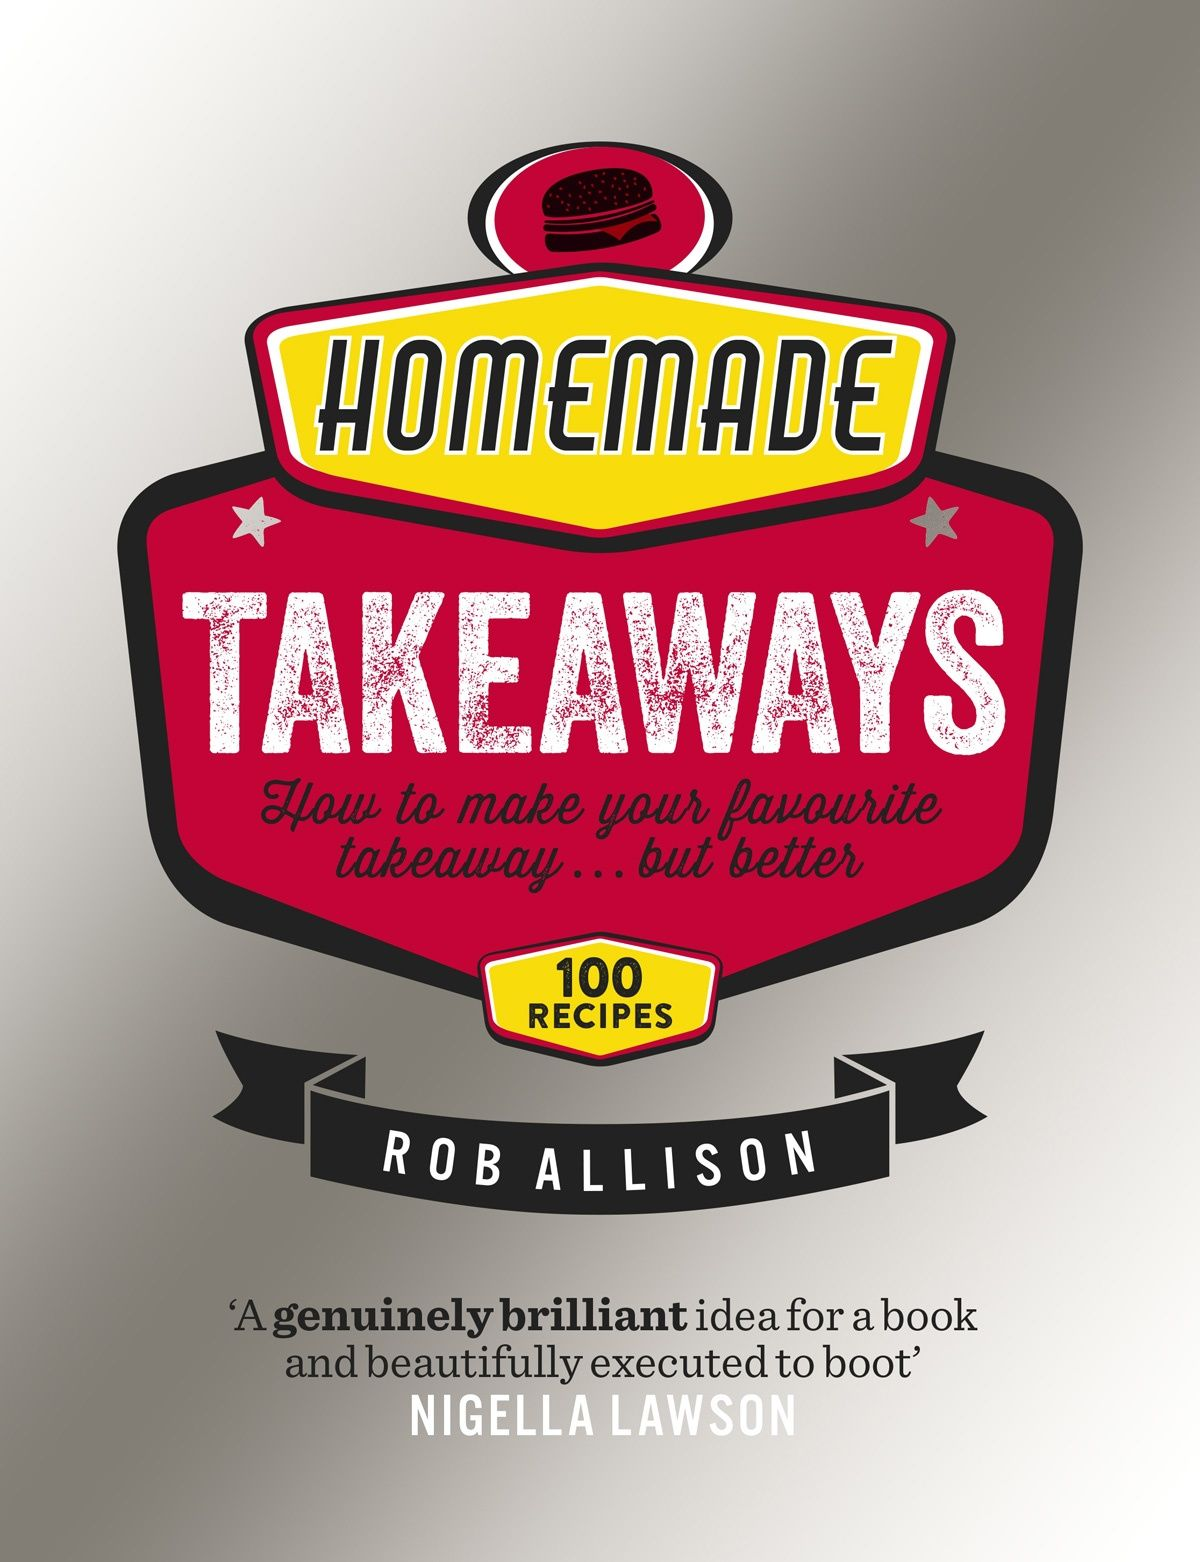 Homemade Takeaways by Rob Allison. I gave a quote for this book when it came out, but it occurs to me that Cookbook Corner was dormant then, so I failed to bring it to your attention. I apologise for this major oversight. I've worked with Rob Allison over the years and eaten his food: I was a fan long before the book came out.